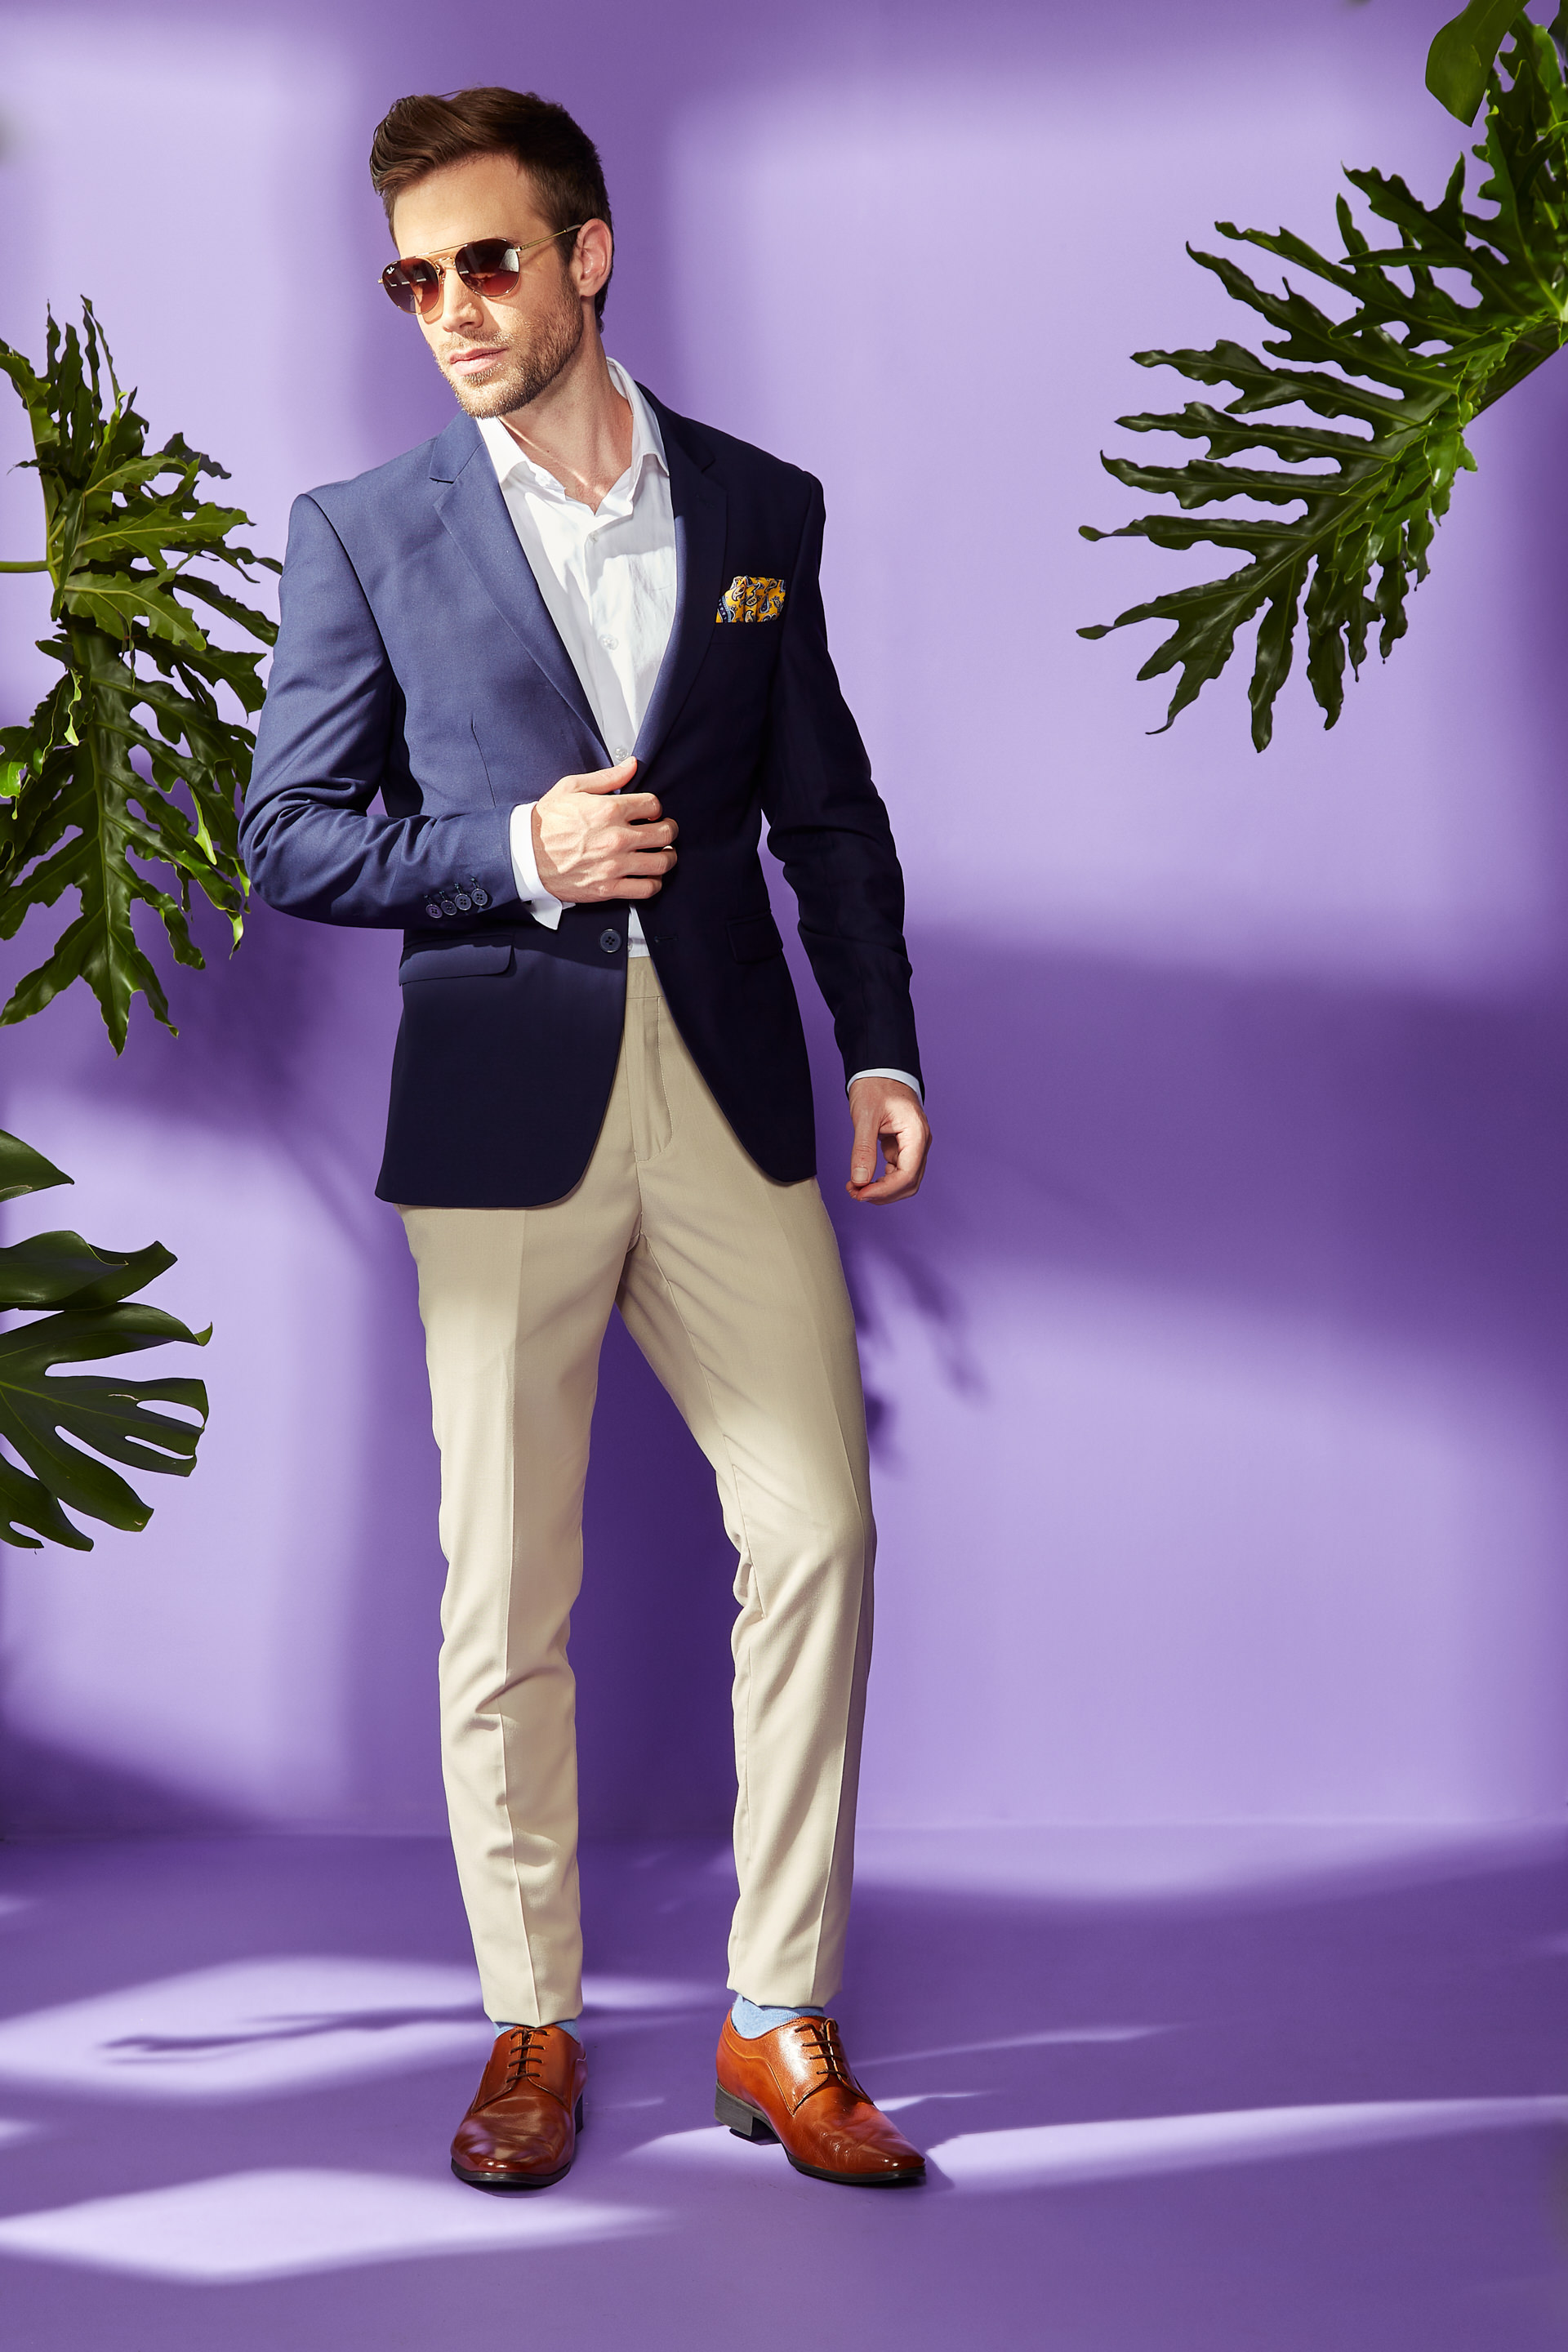 Get The Look Suit Separates Ecru Pants And Navy Jacket